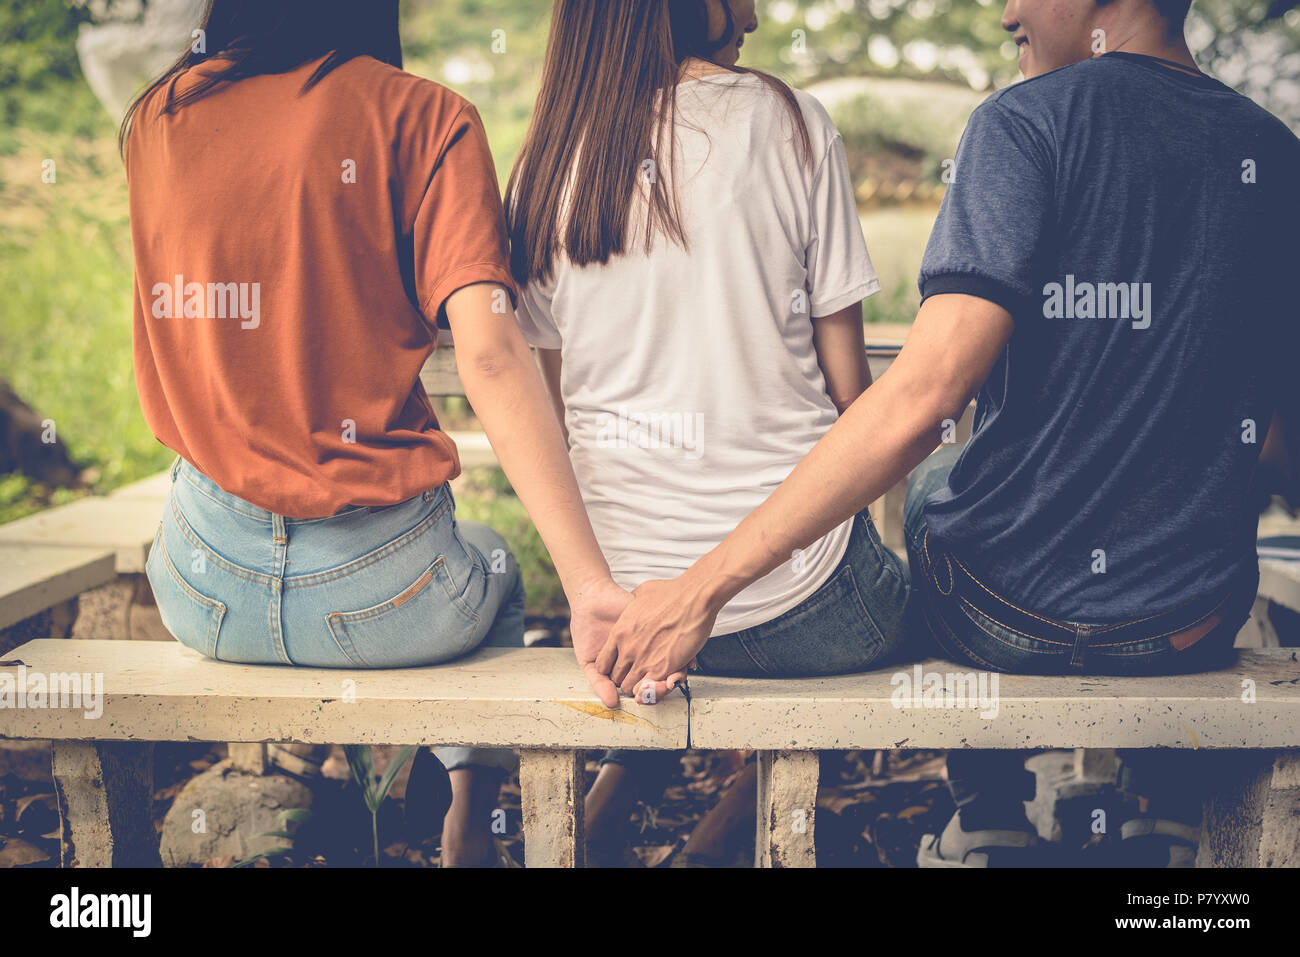 Boyfriend and another woman grab hands from behind together without sight of his girlfriend.. Paramour and divorce concept. Social problem and cheatin - Stock Image